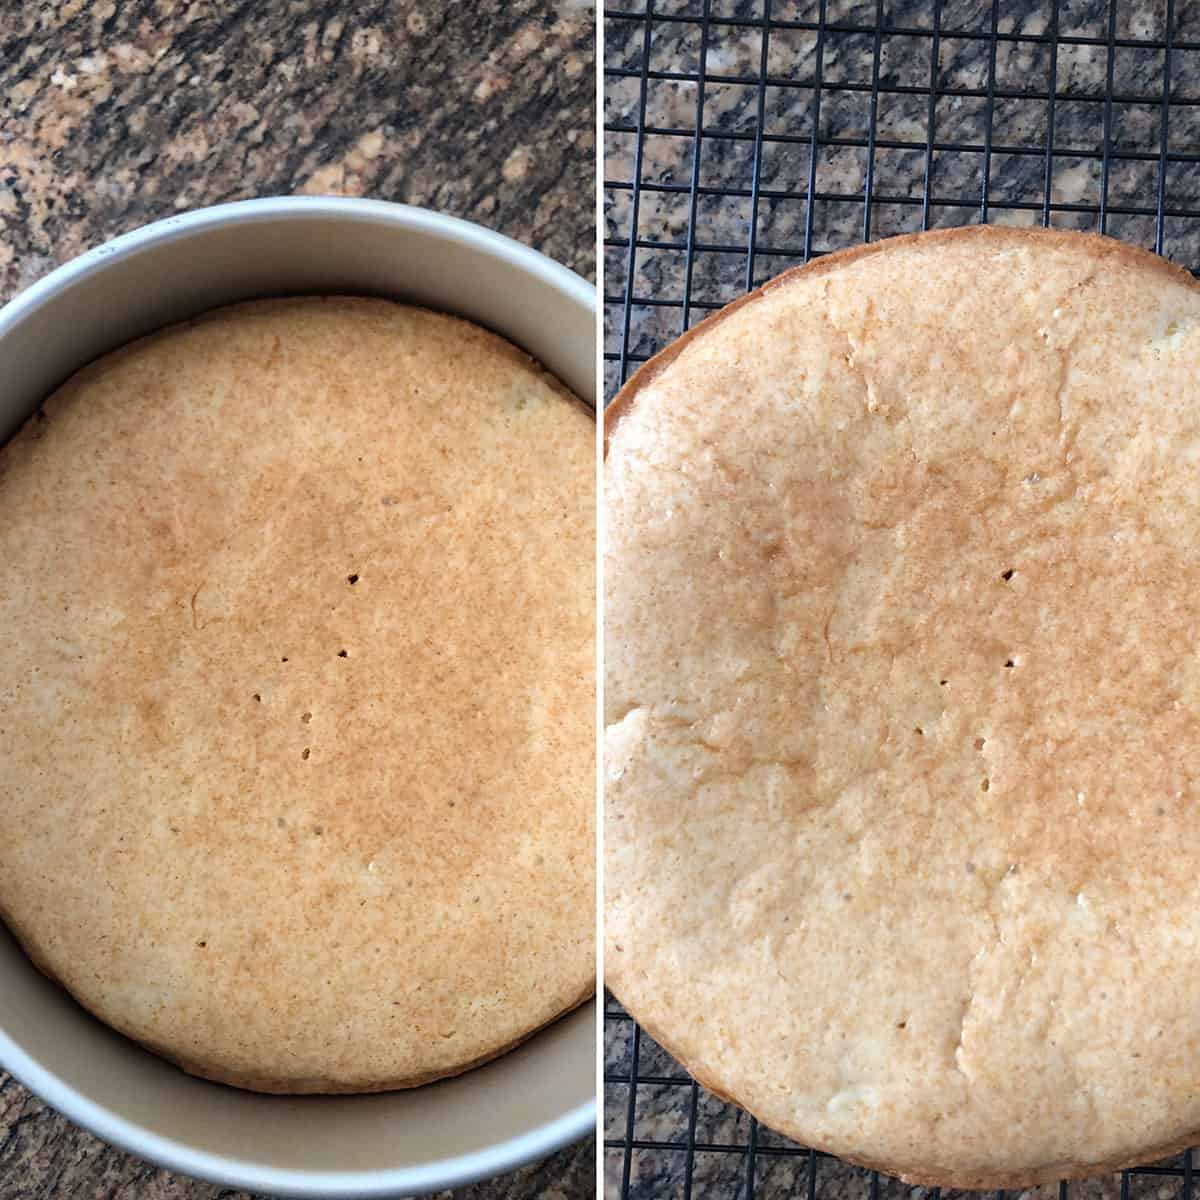 Baked cake in cake pan and placed on wire rack for cooling